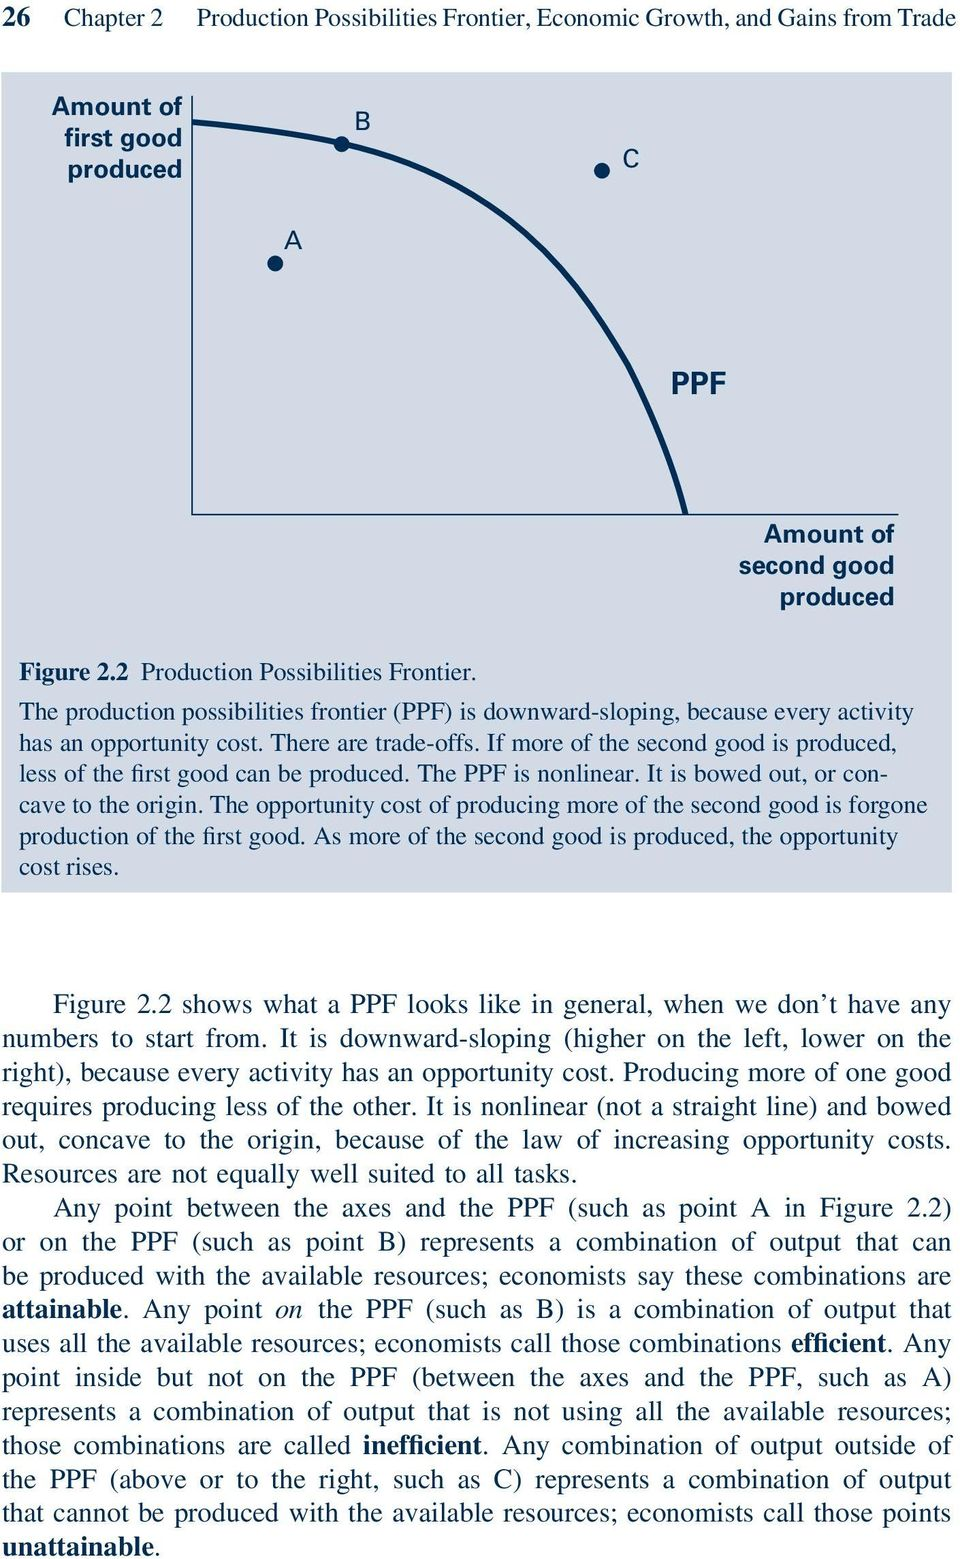 Production Possibilities Frontier Economic Growth And Gains From